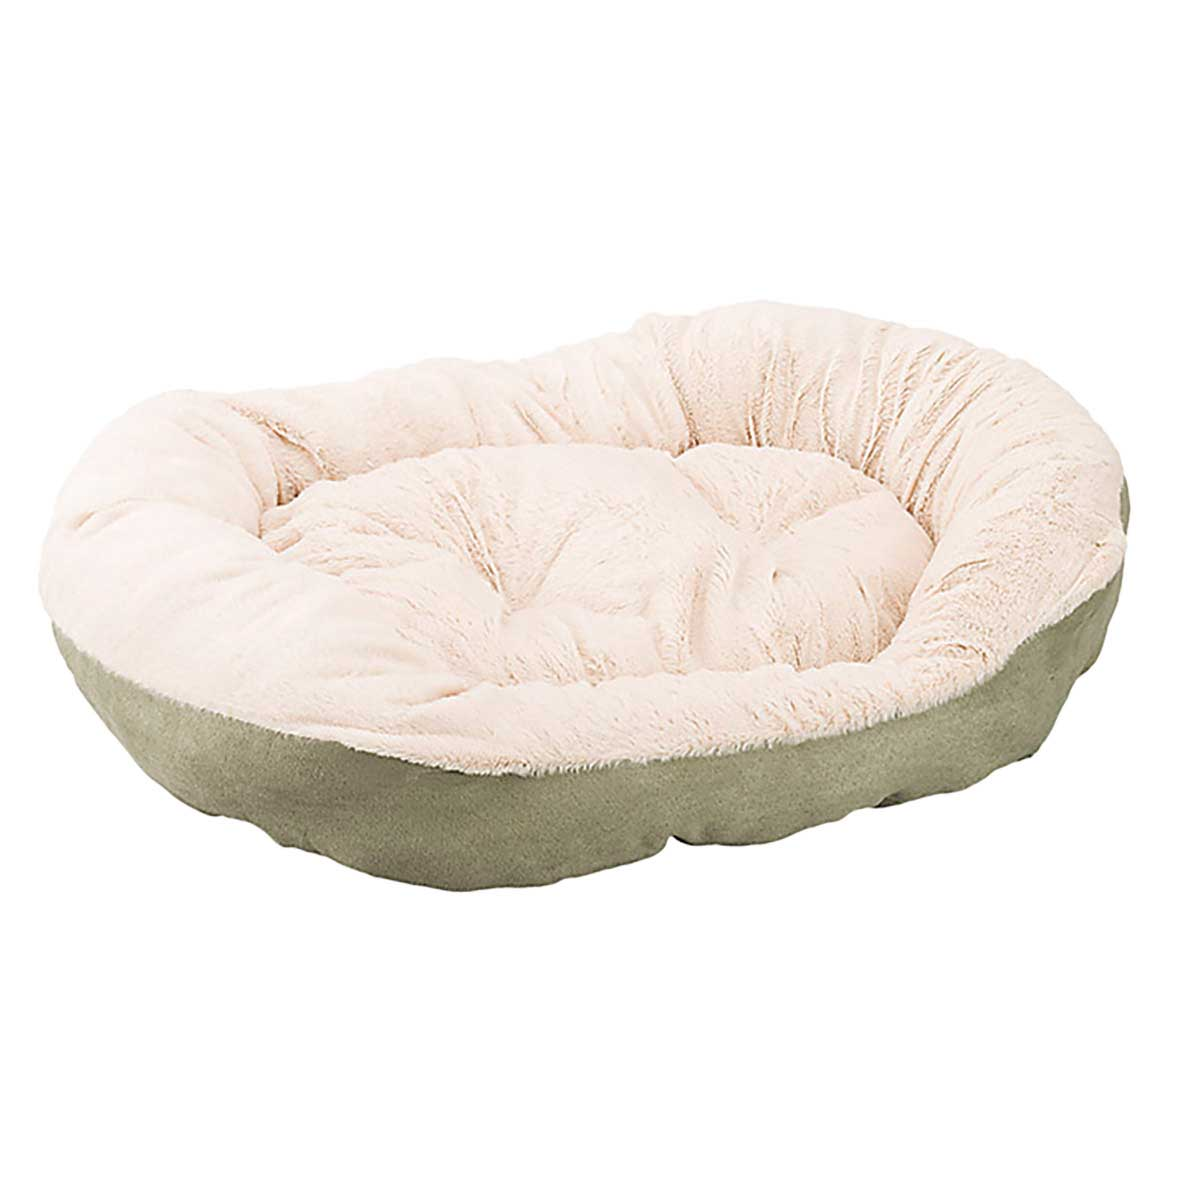 26 inch Sleep Zone Step-In Cuddlers Oval Bed Faux Suede Tan and Sage